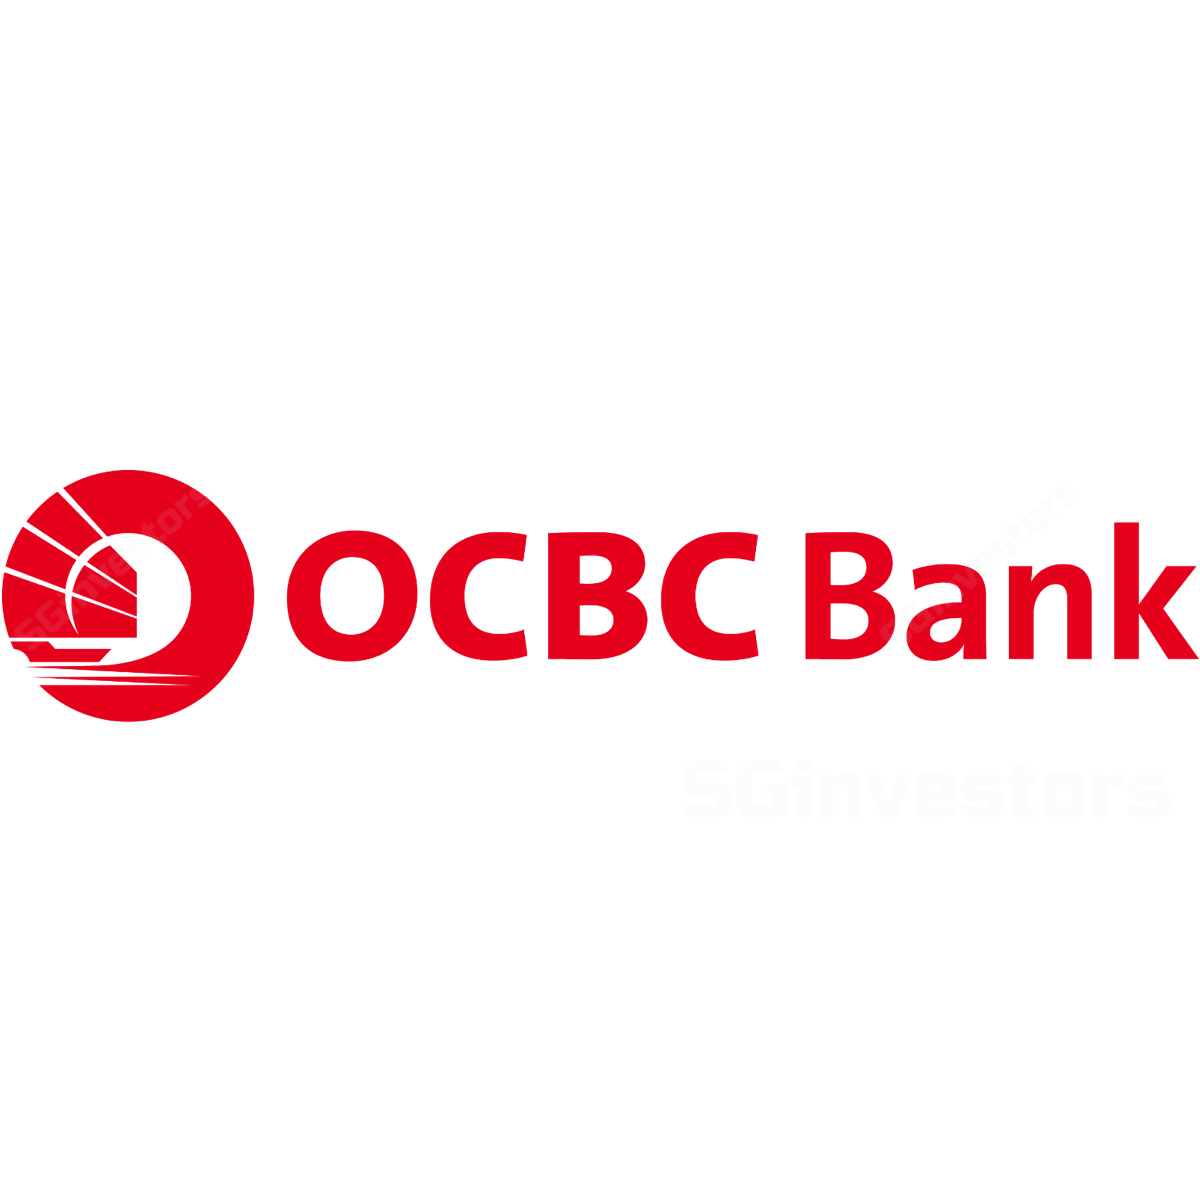 OCBC Bank - Maybank Kim Eng 2016-05-03: Weaker growth